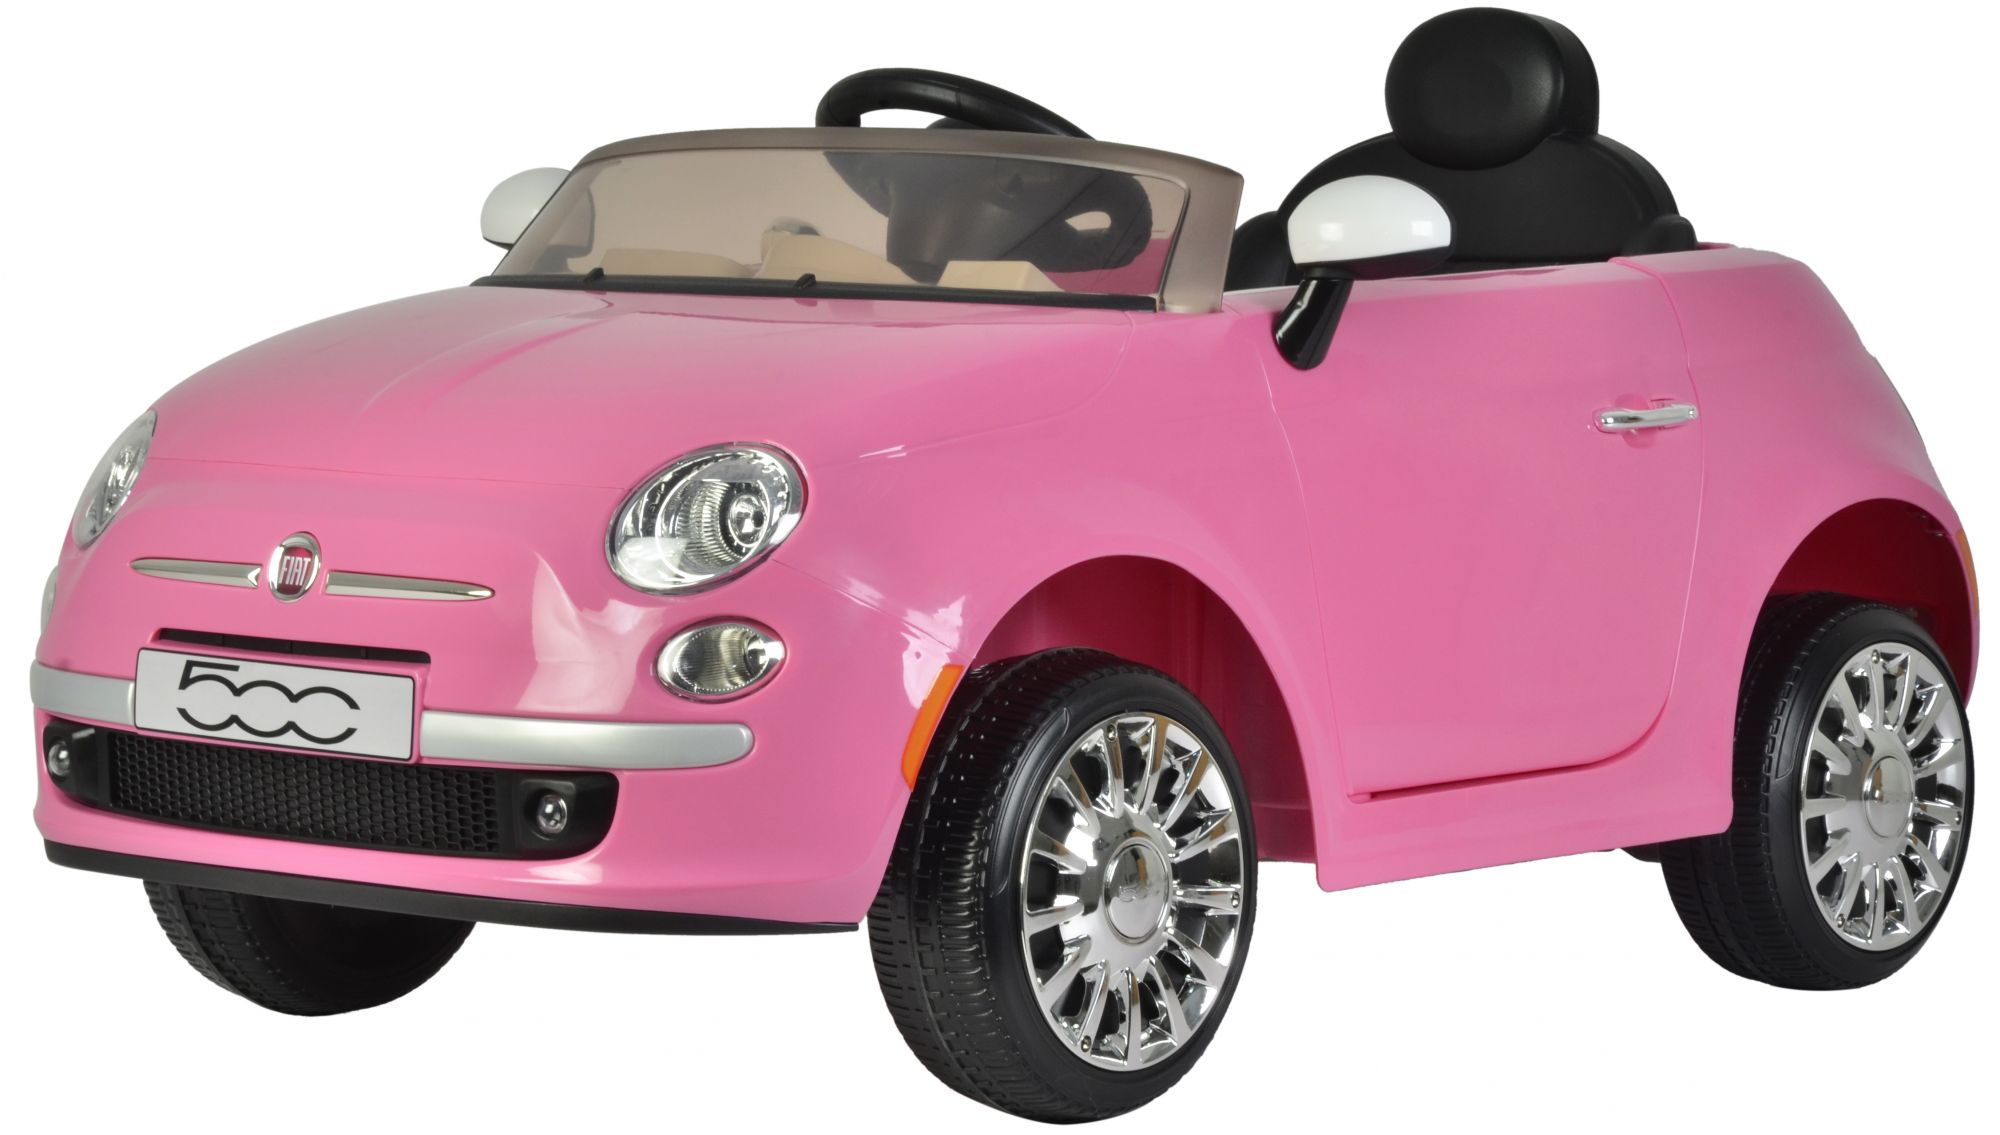 Fiat 500cc Pink Electric Car With Remote Control 12 Volt